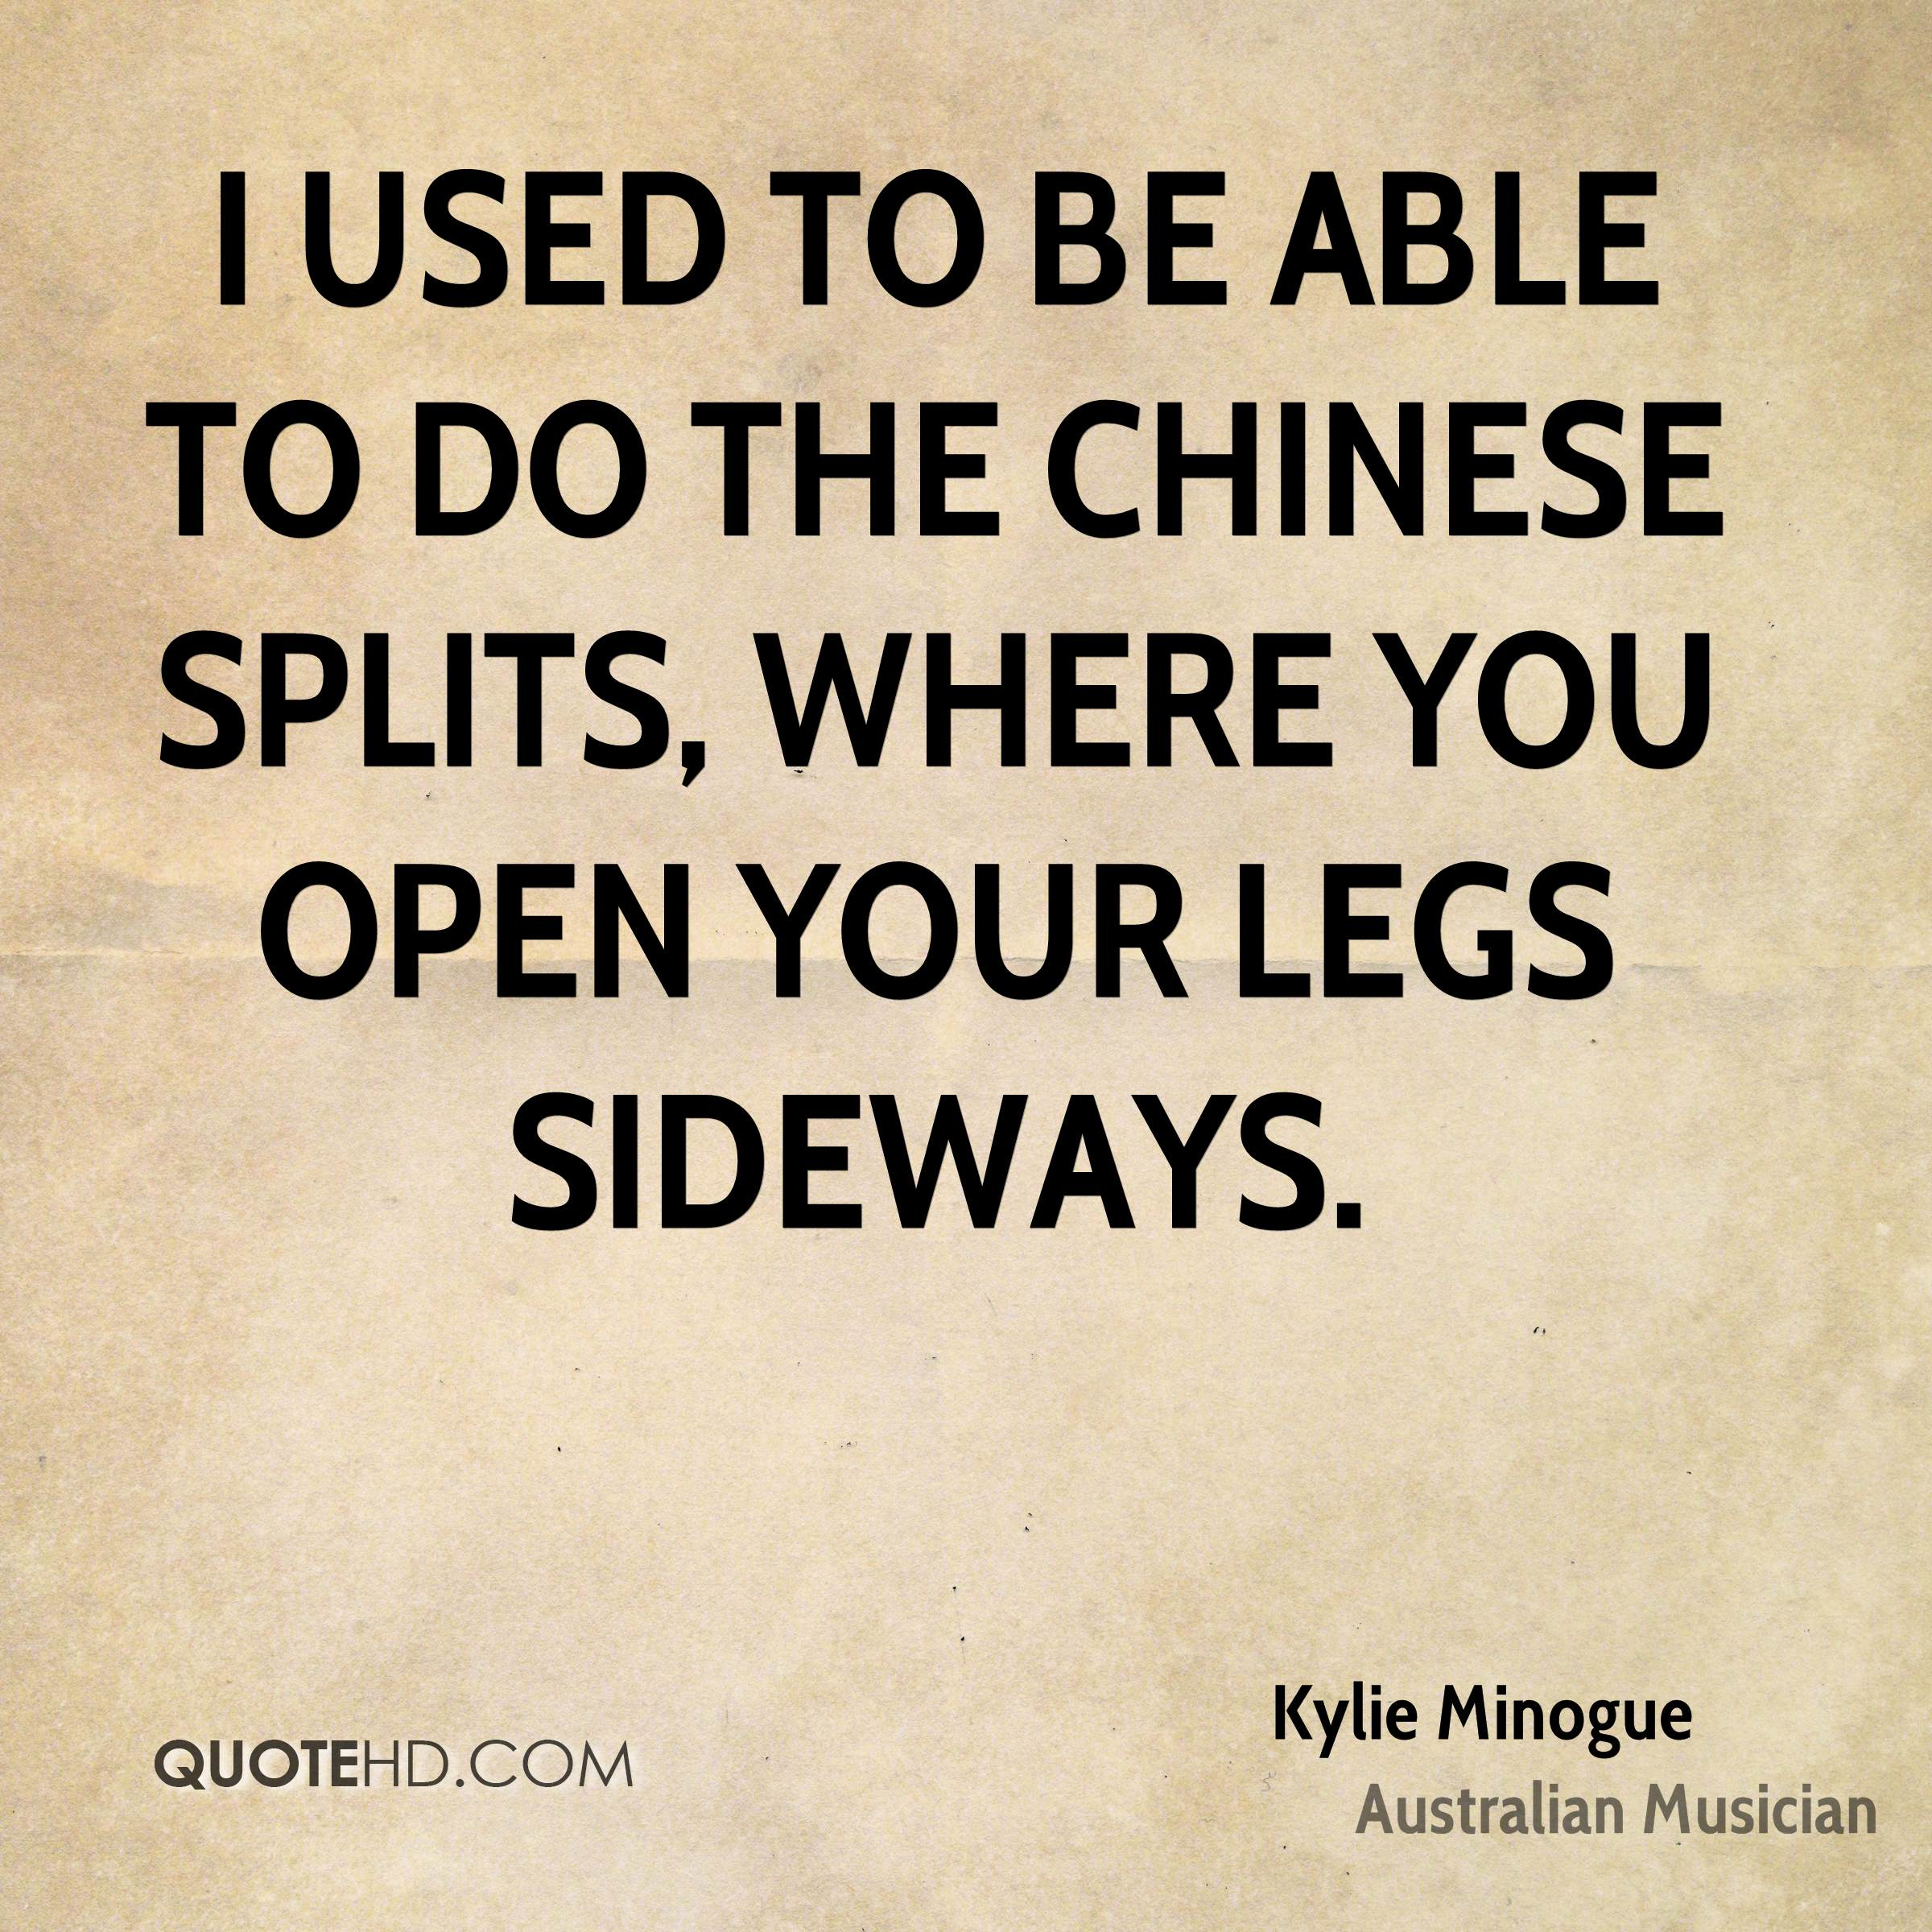 I used to be able to do the Chinese splits, where you open your legs sideways.